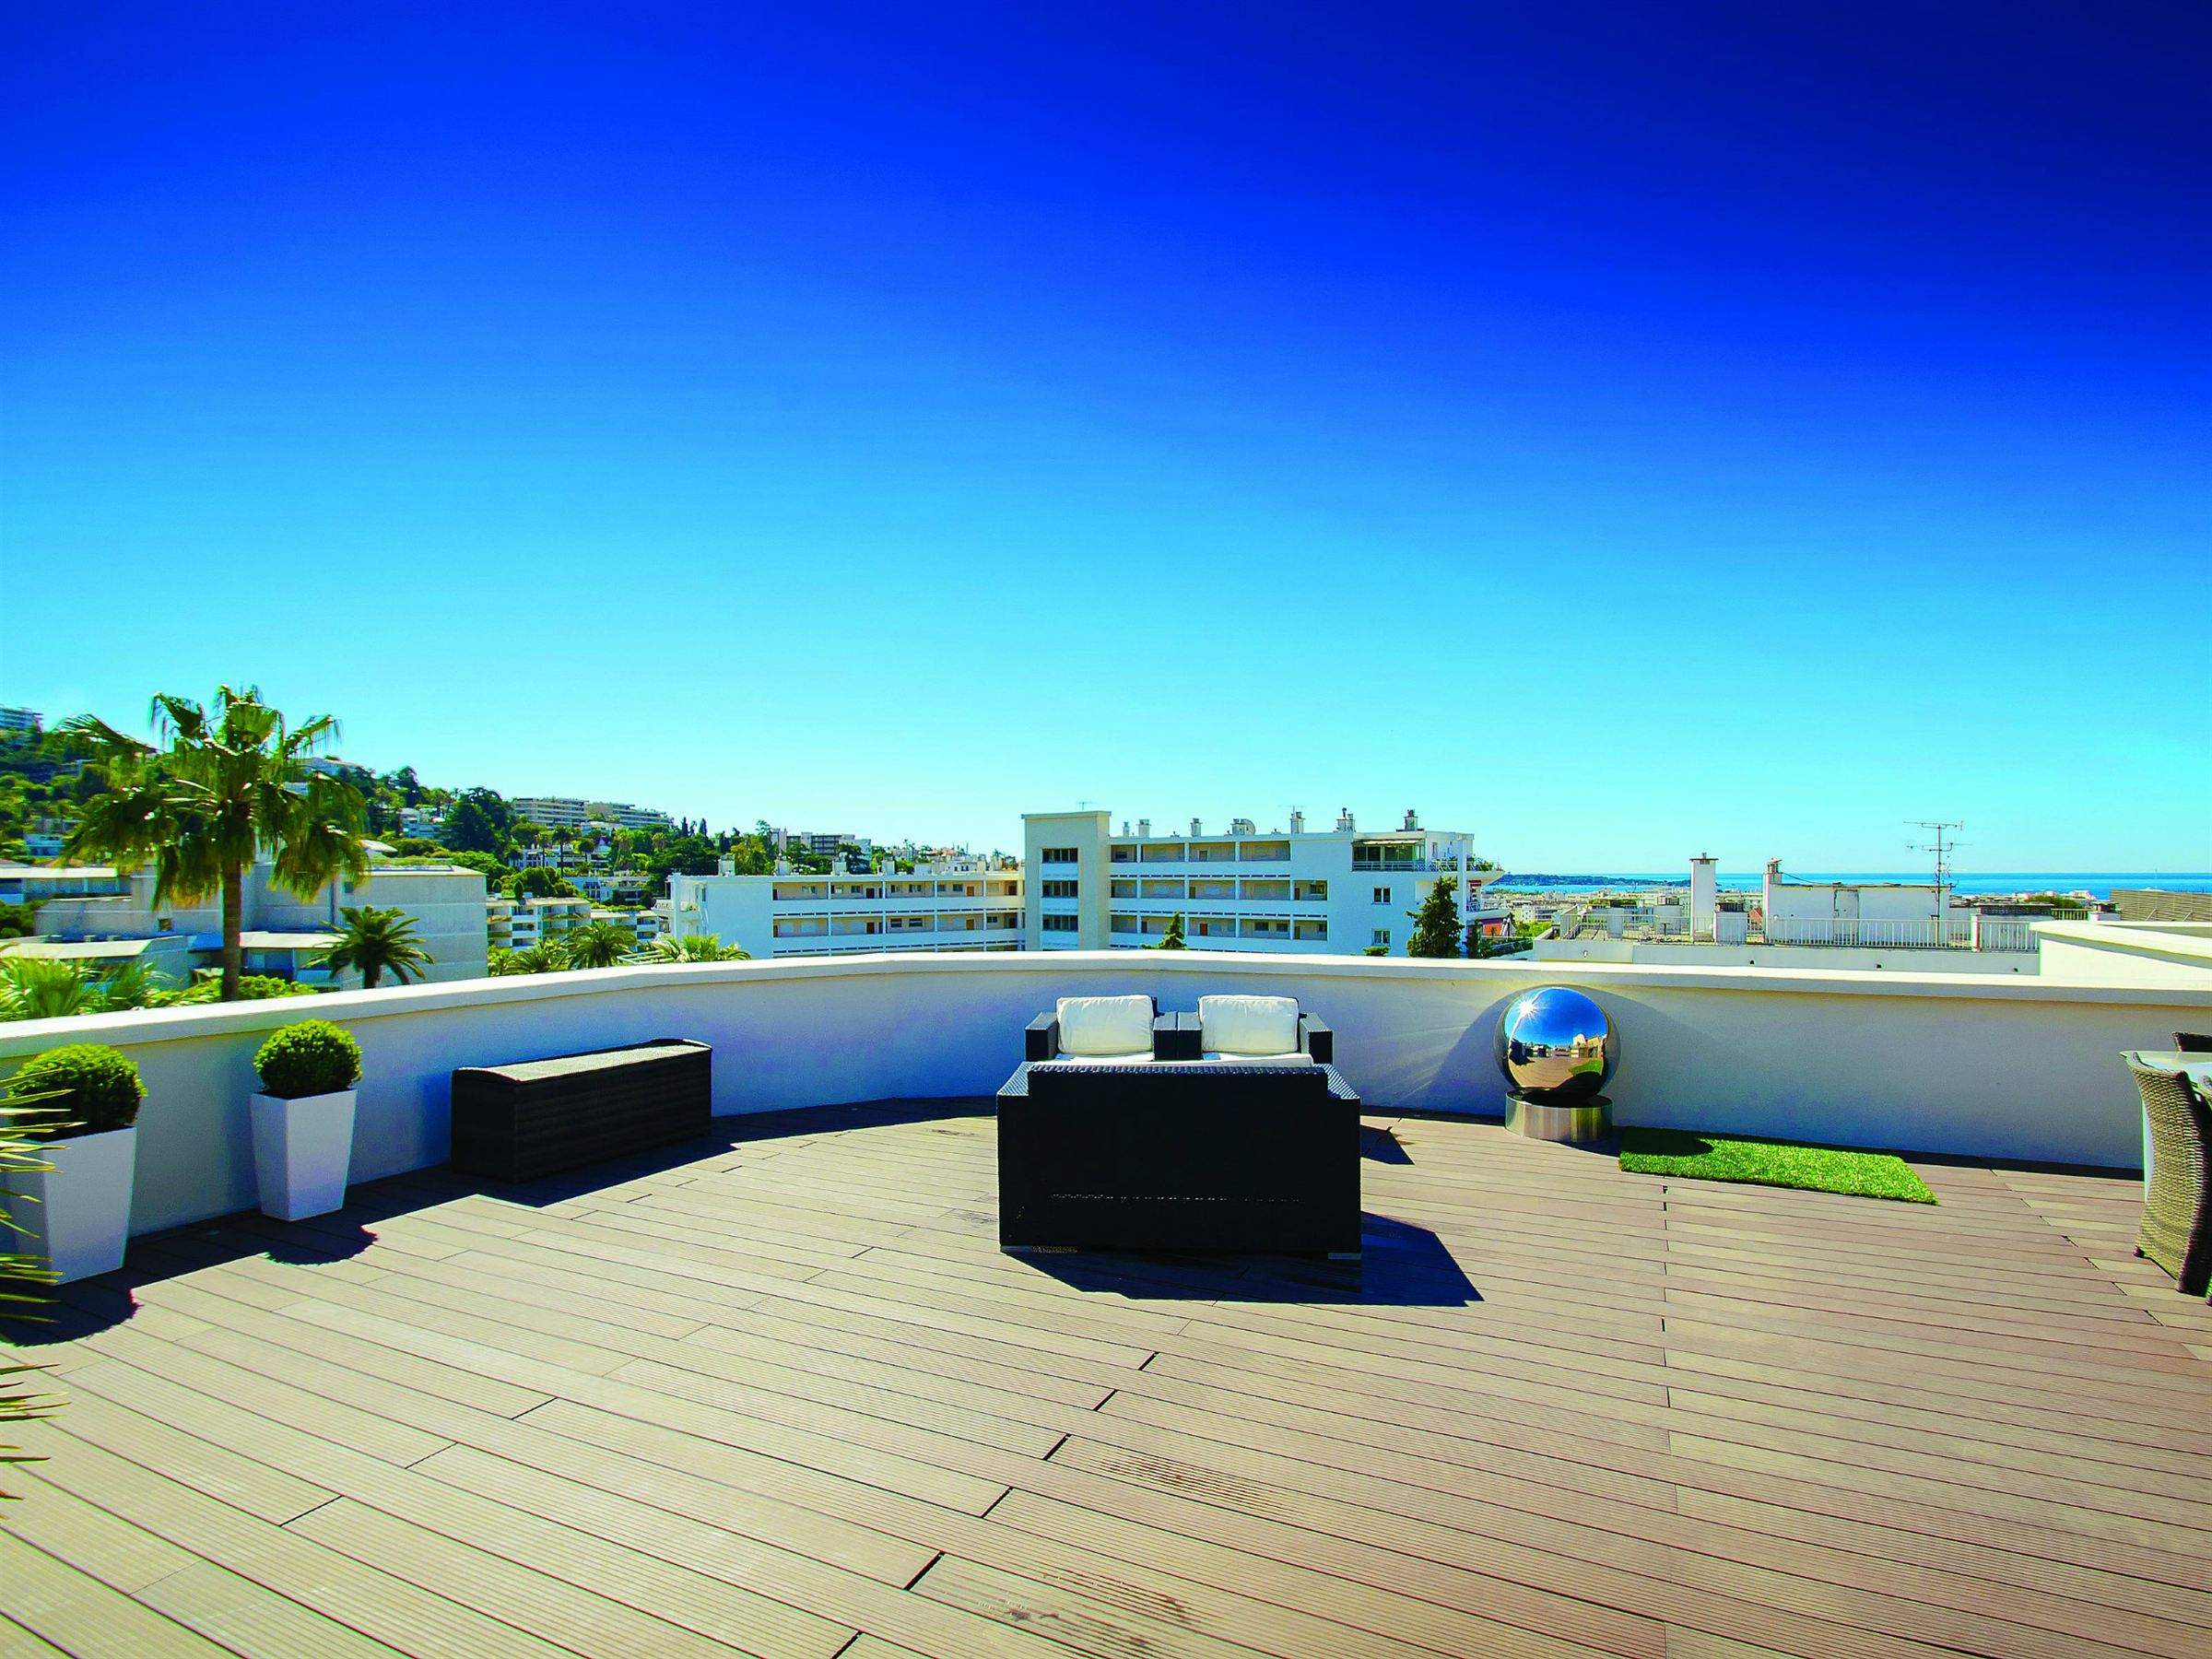 Apartment for Sale at Luxury penthouse with beautiful roof garden for sale in Cannes Cannes, Provence-Alpes-Cote D'Azur 06400 France